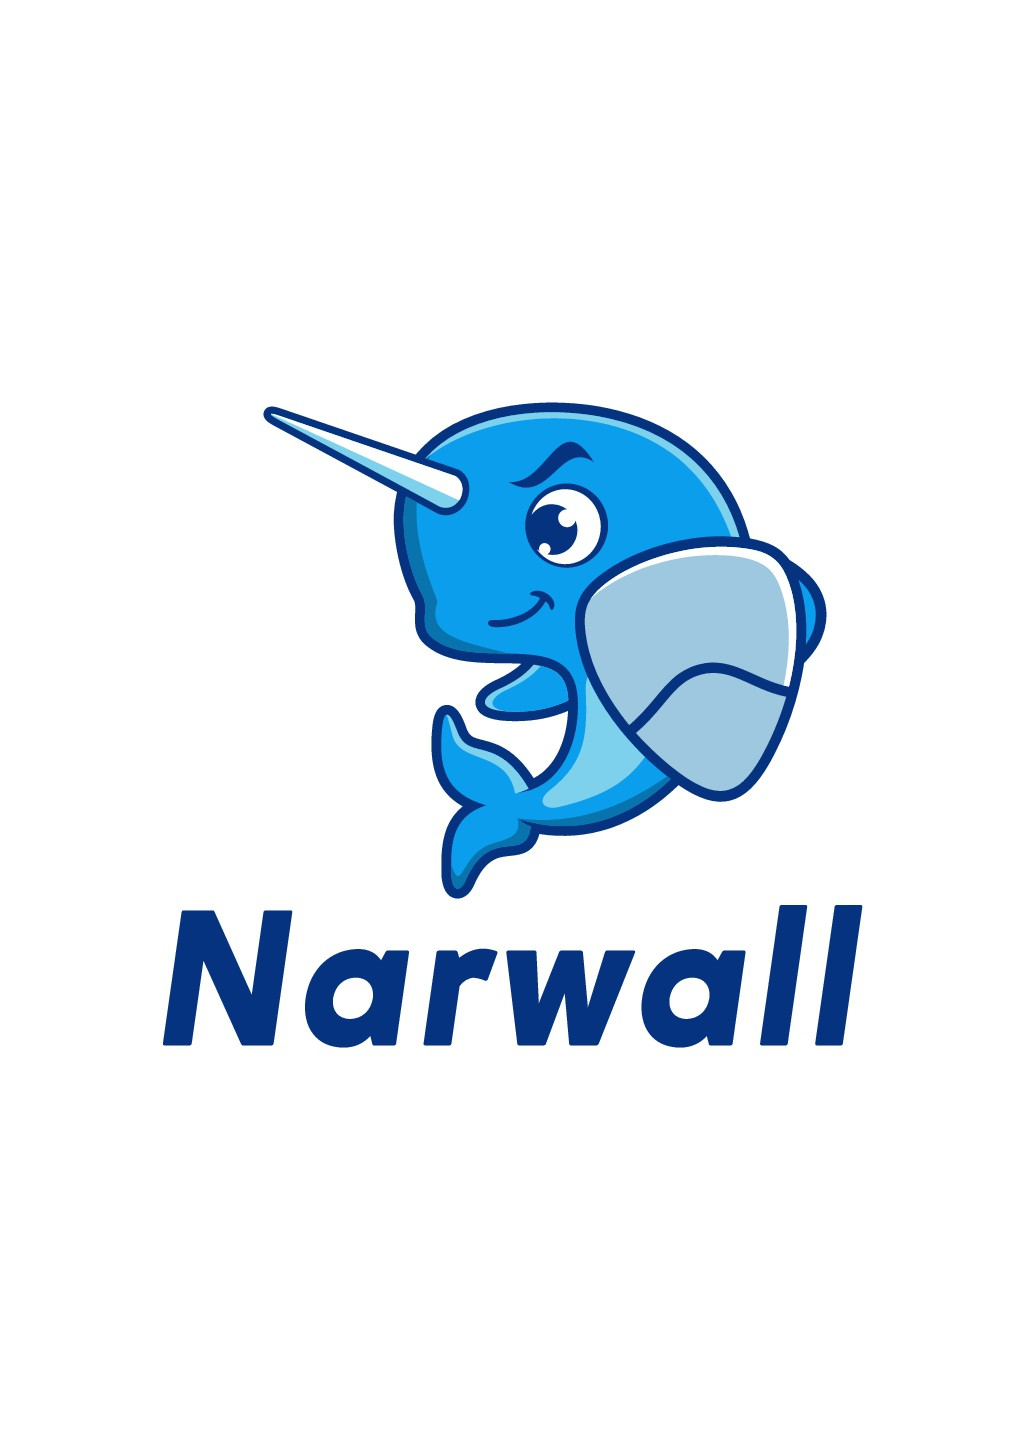 Create a cute, premium narwhal mascot for a bold, innovative COVID mask